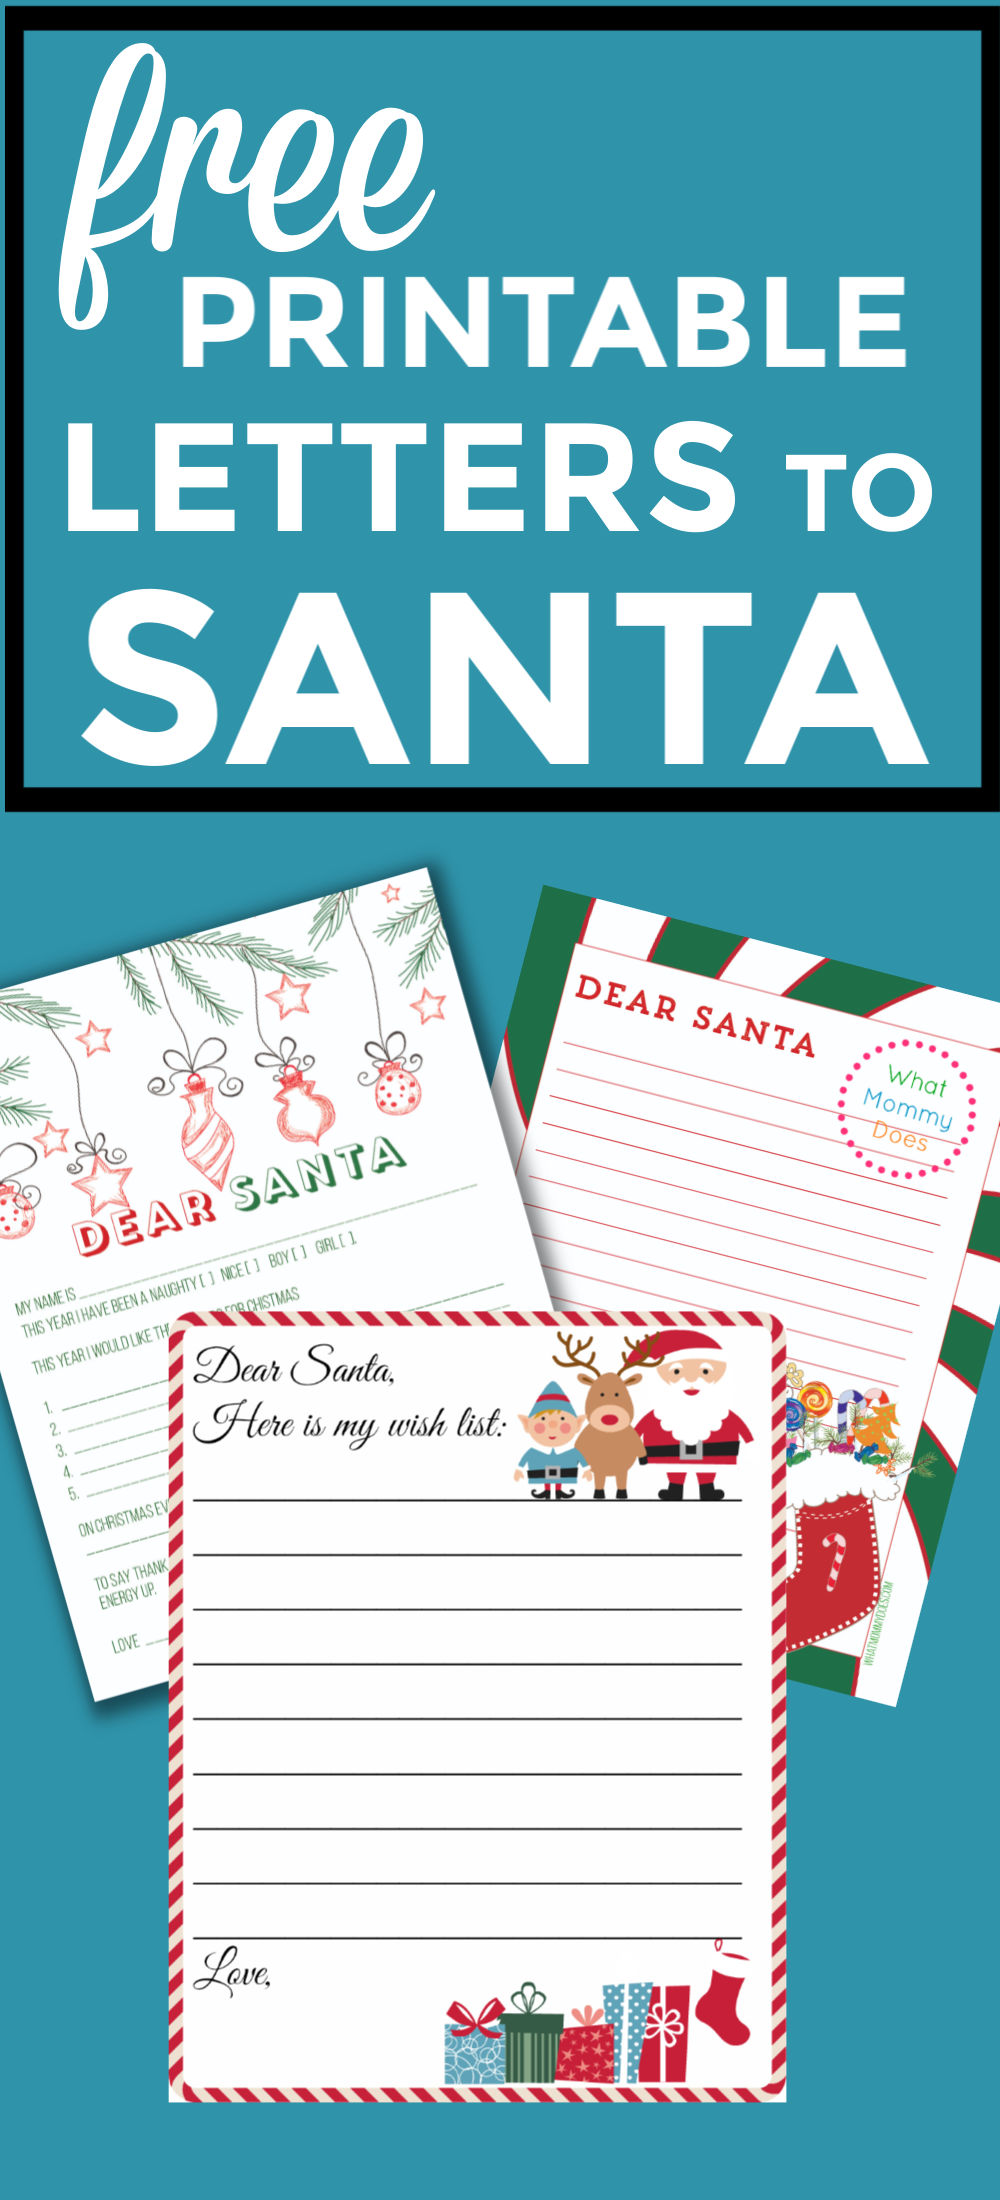 Collection of Printable Letters to Santa or Mrs. Claus that you can fill out and mail